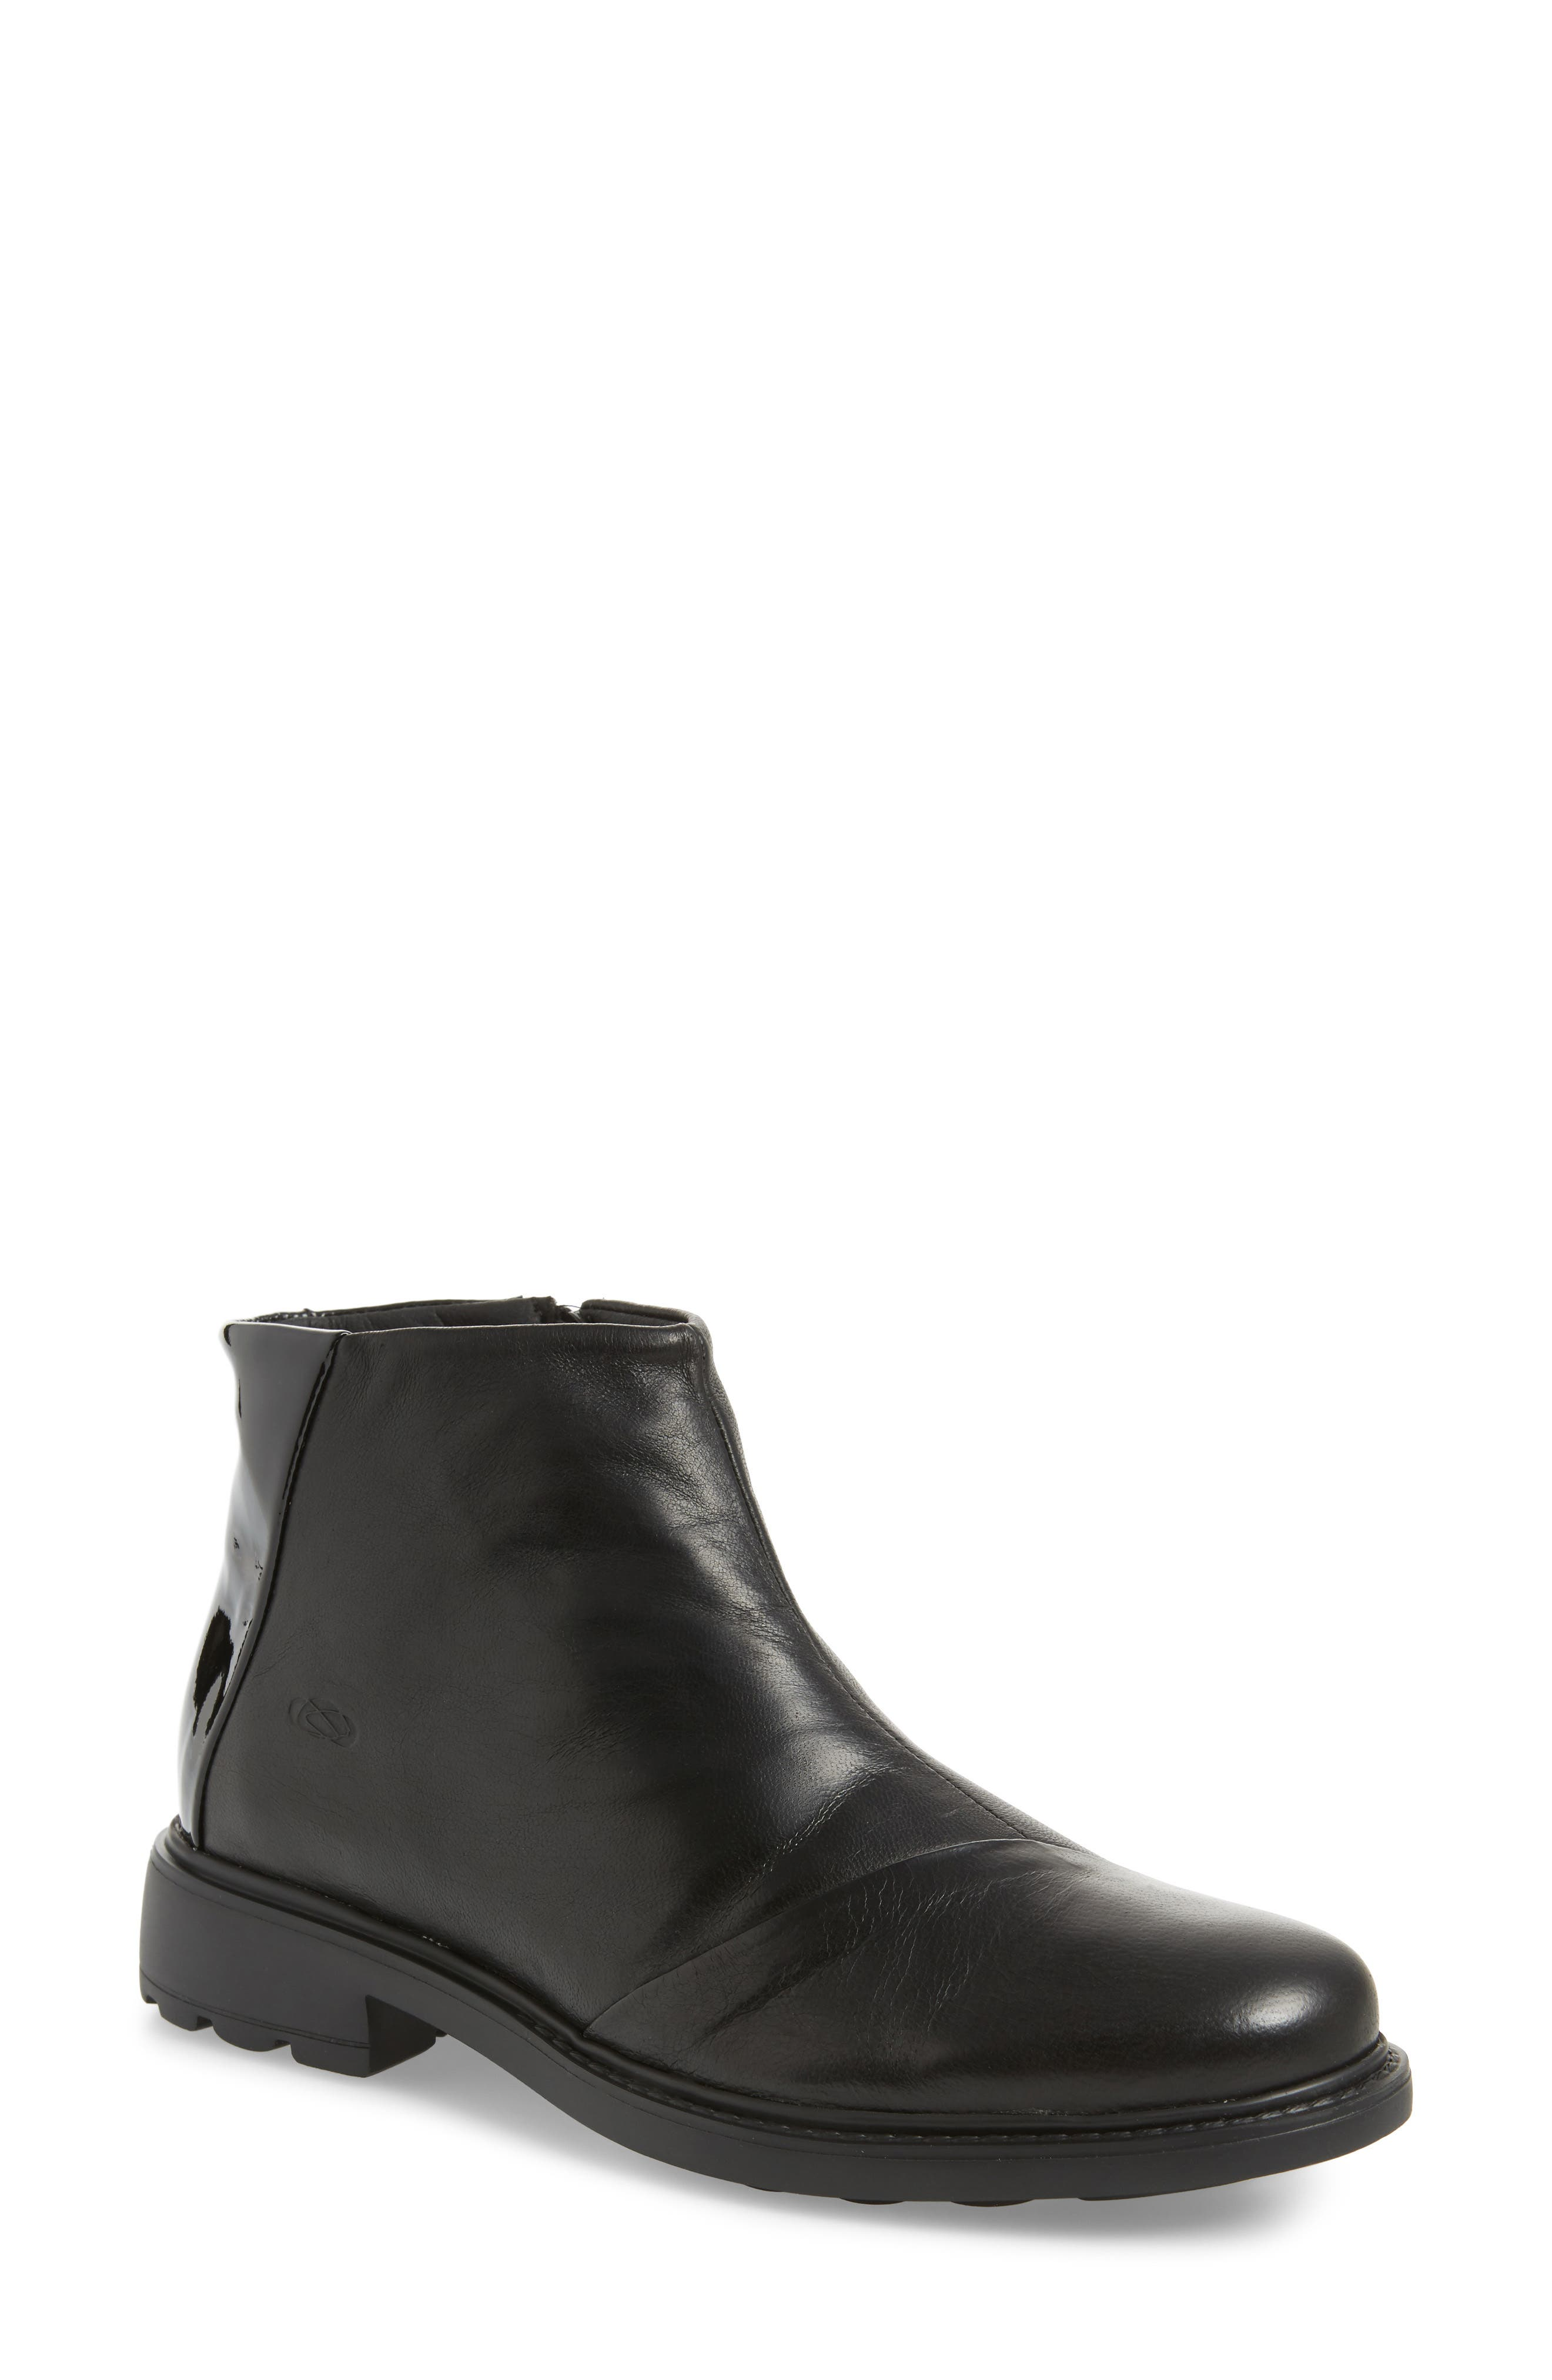 Penny Bootie,                             Main thumbnail 1, color,                             Black Leather